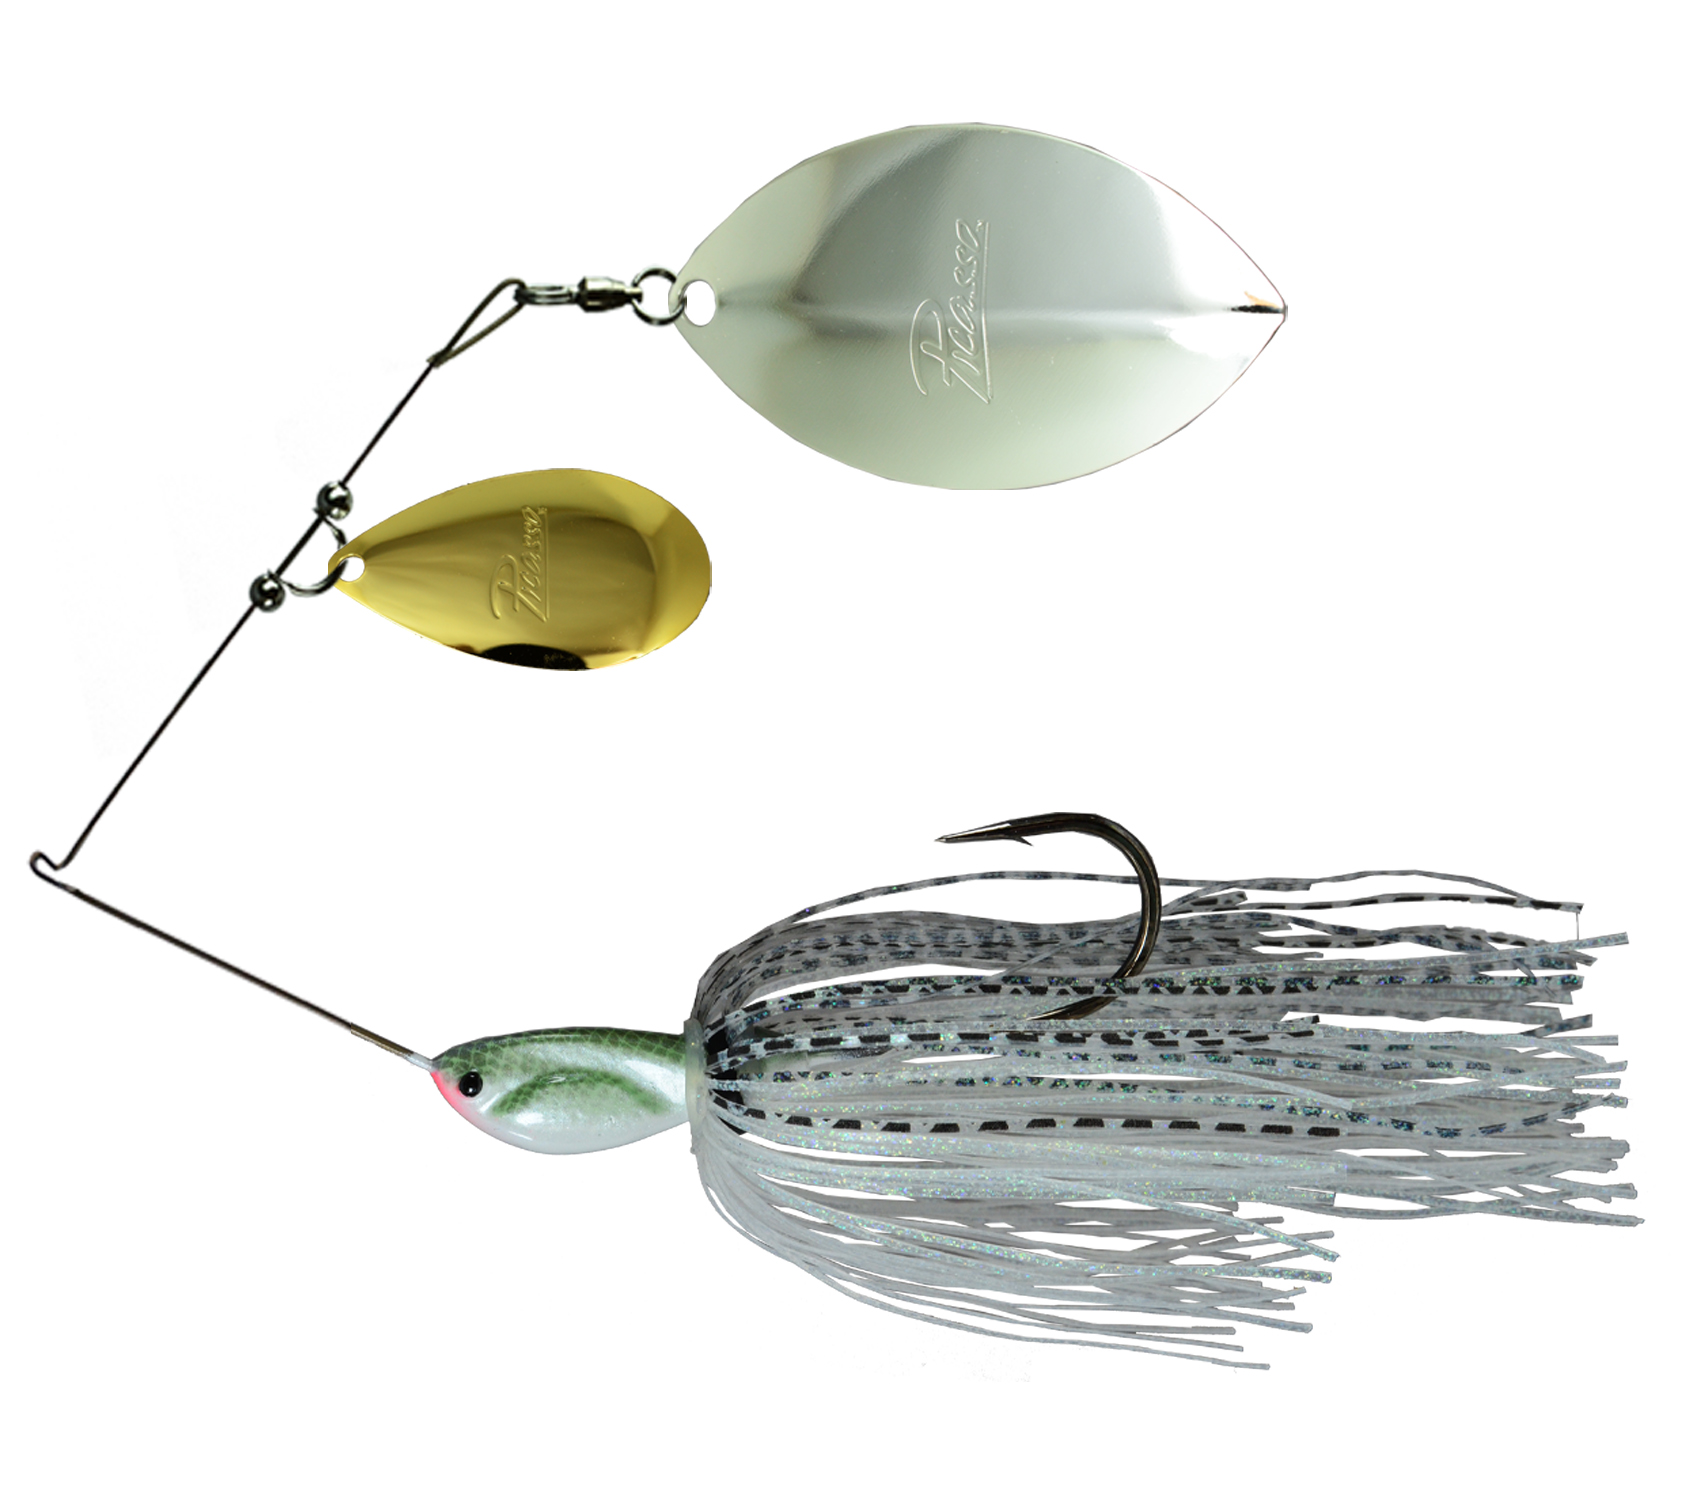 Picasso Lures Tandem Thunder Willow Spinner Bait